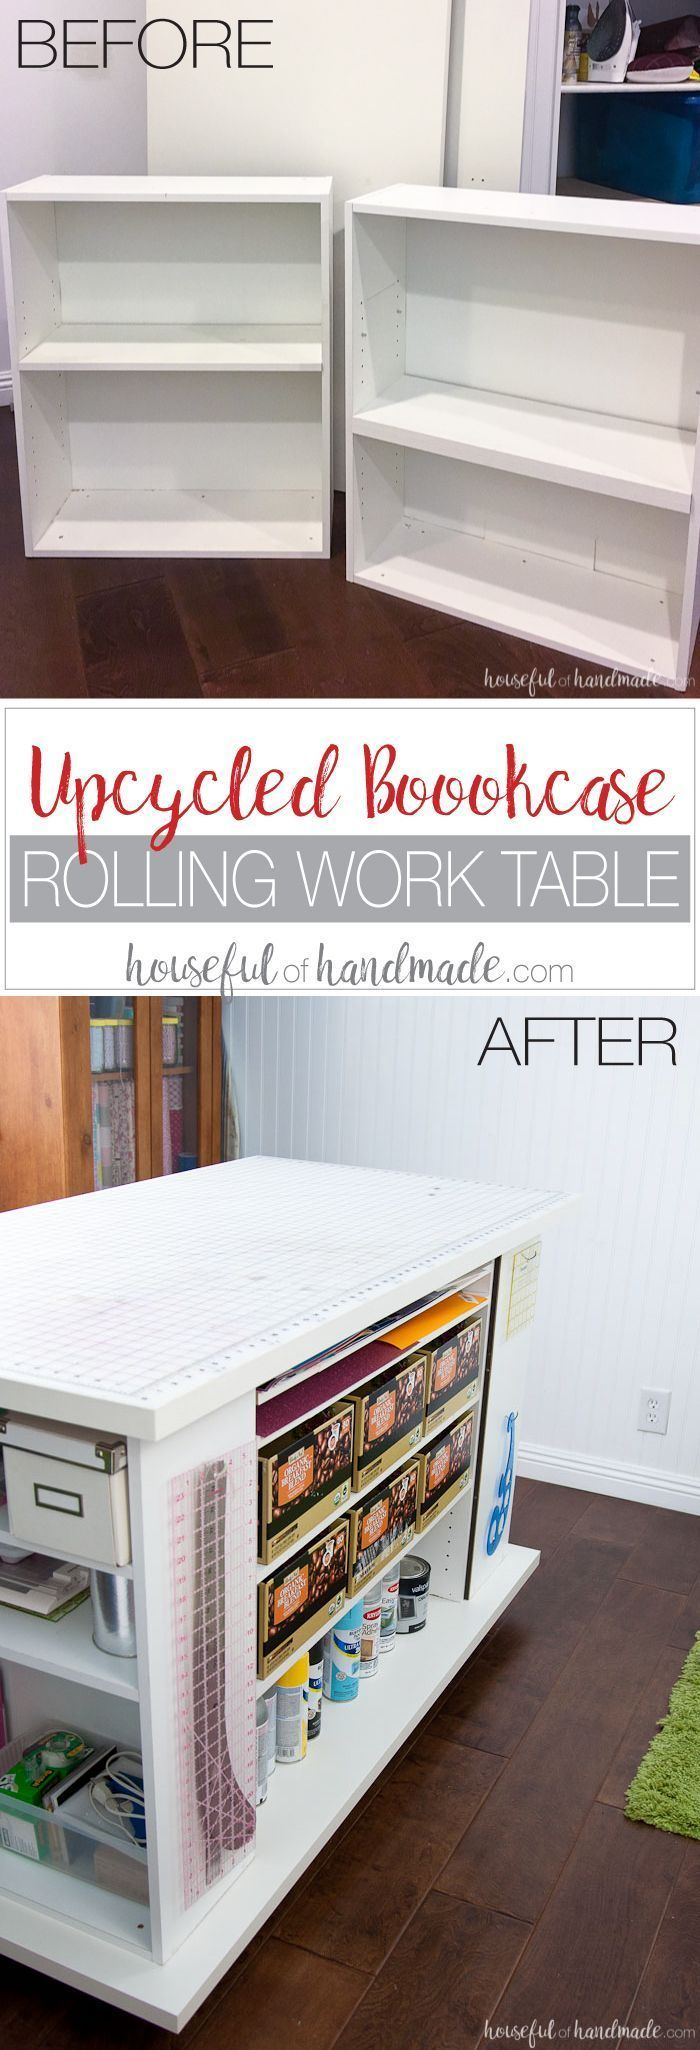 Upcycled Bookcase Rolling Work Table images